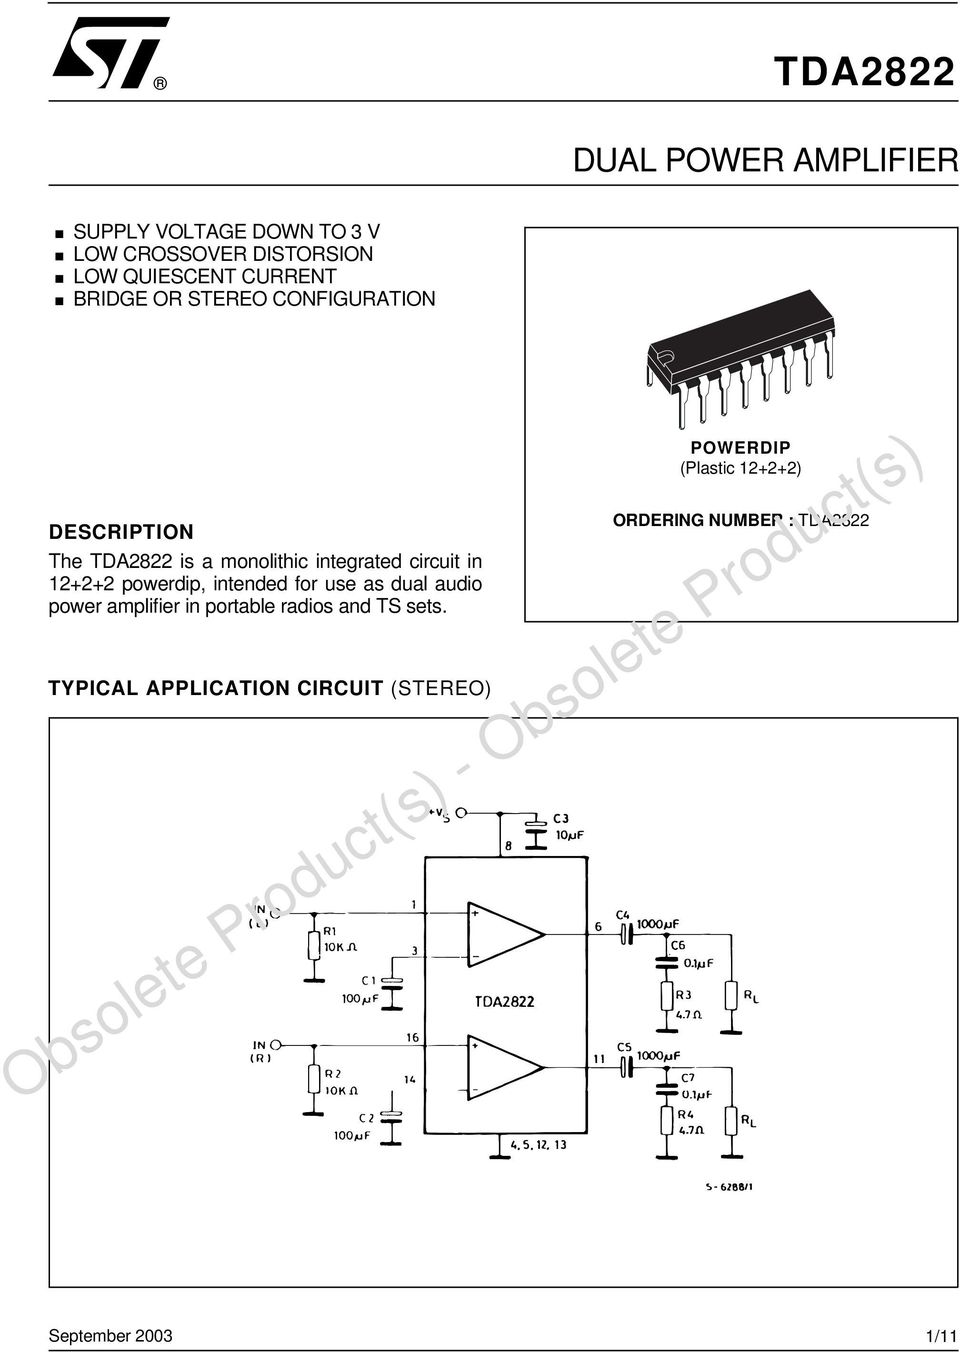 TDA2822 is a monolithic integrated circuit in 12+2+2 powerdip, intended for use as dual audio